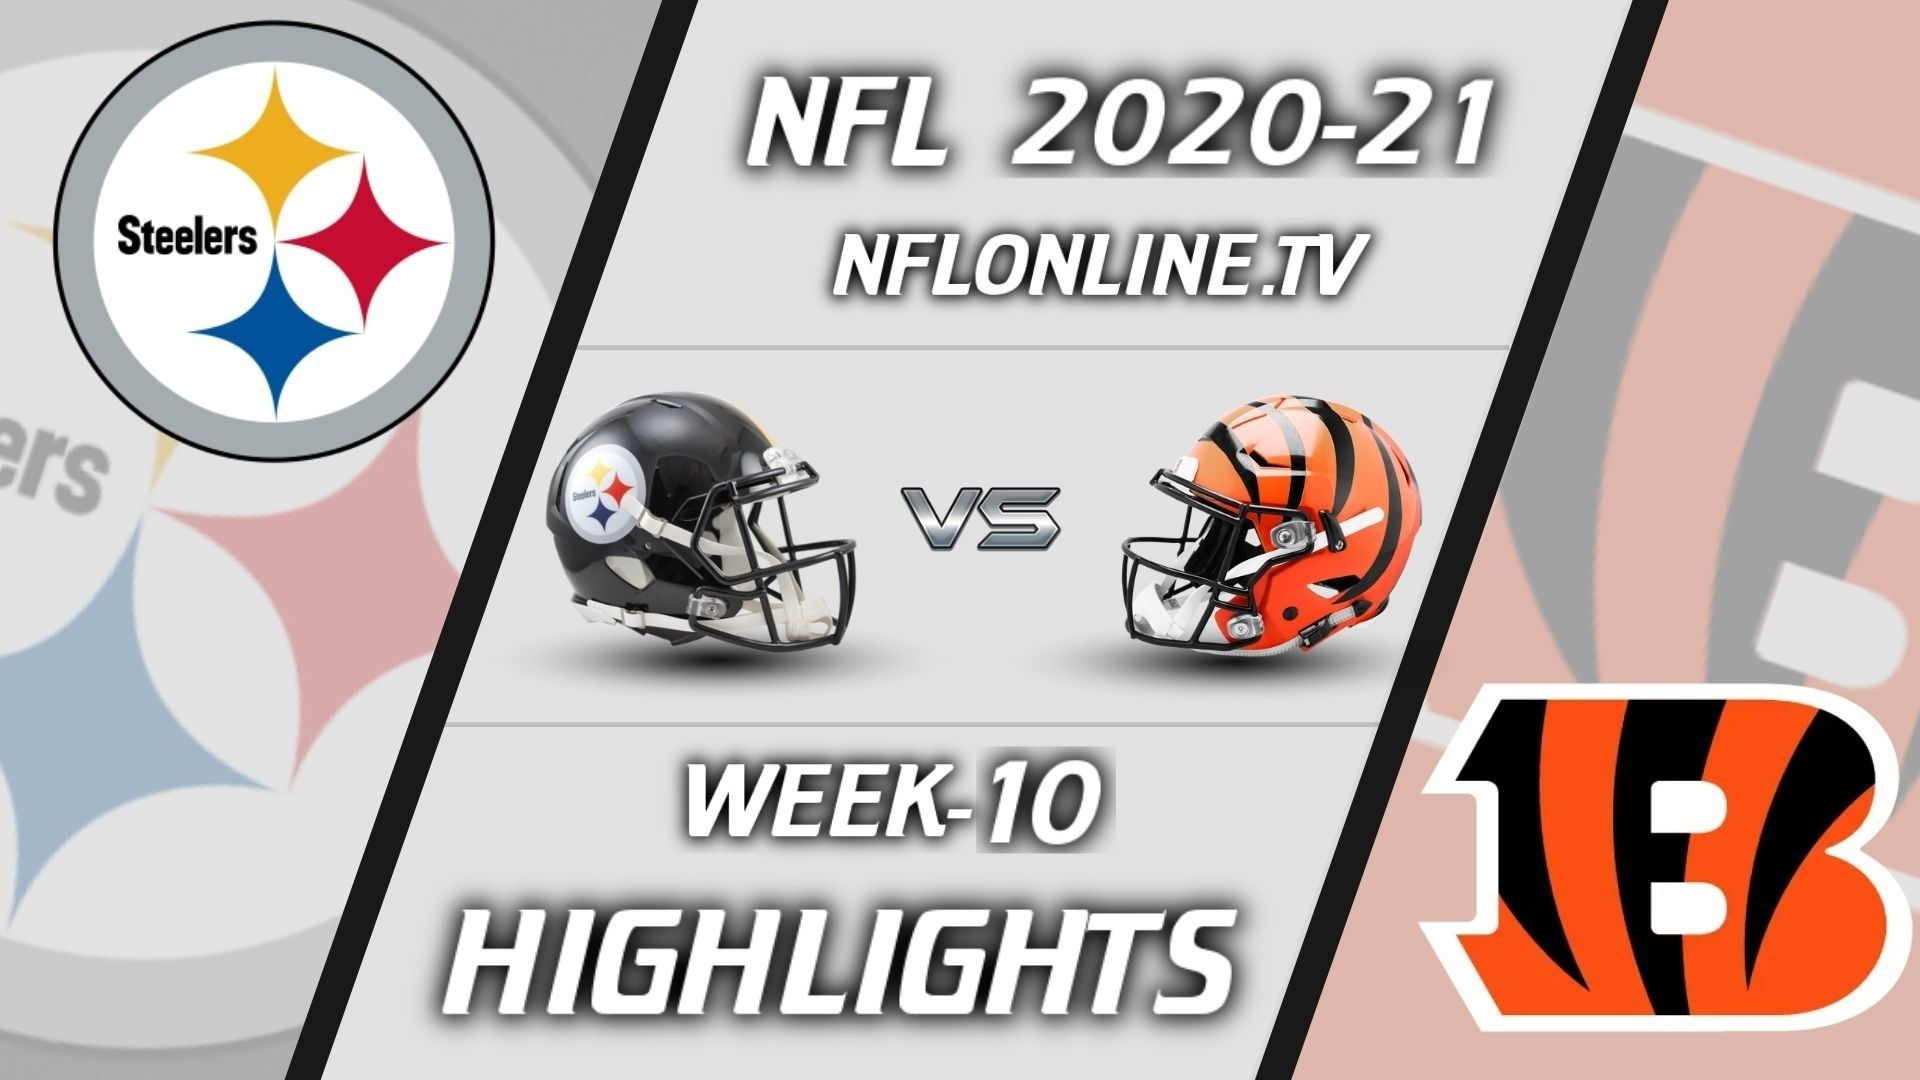 Steelers vs Bengals Highlights 2020 WK 10